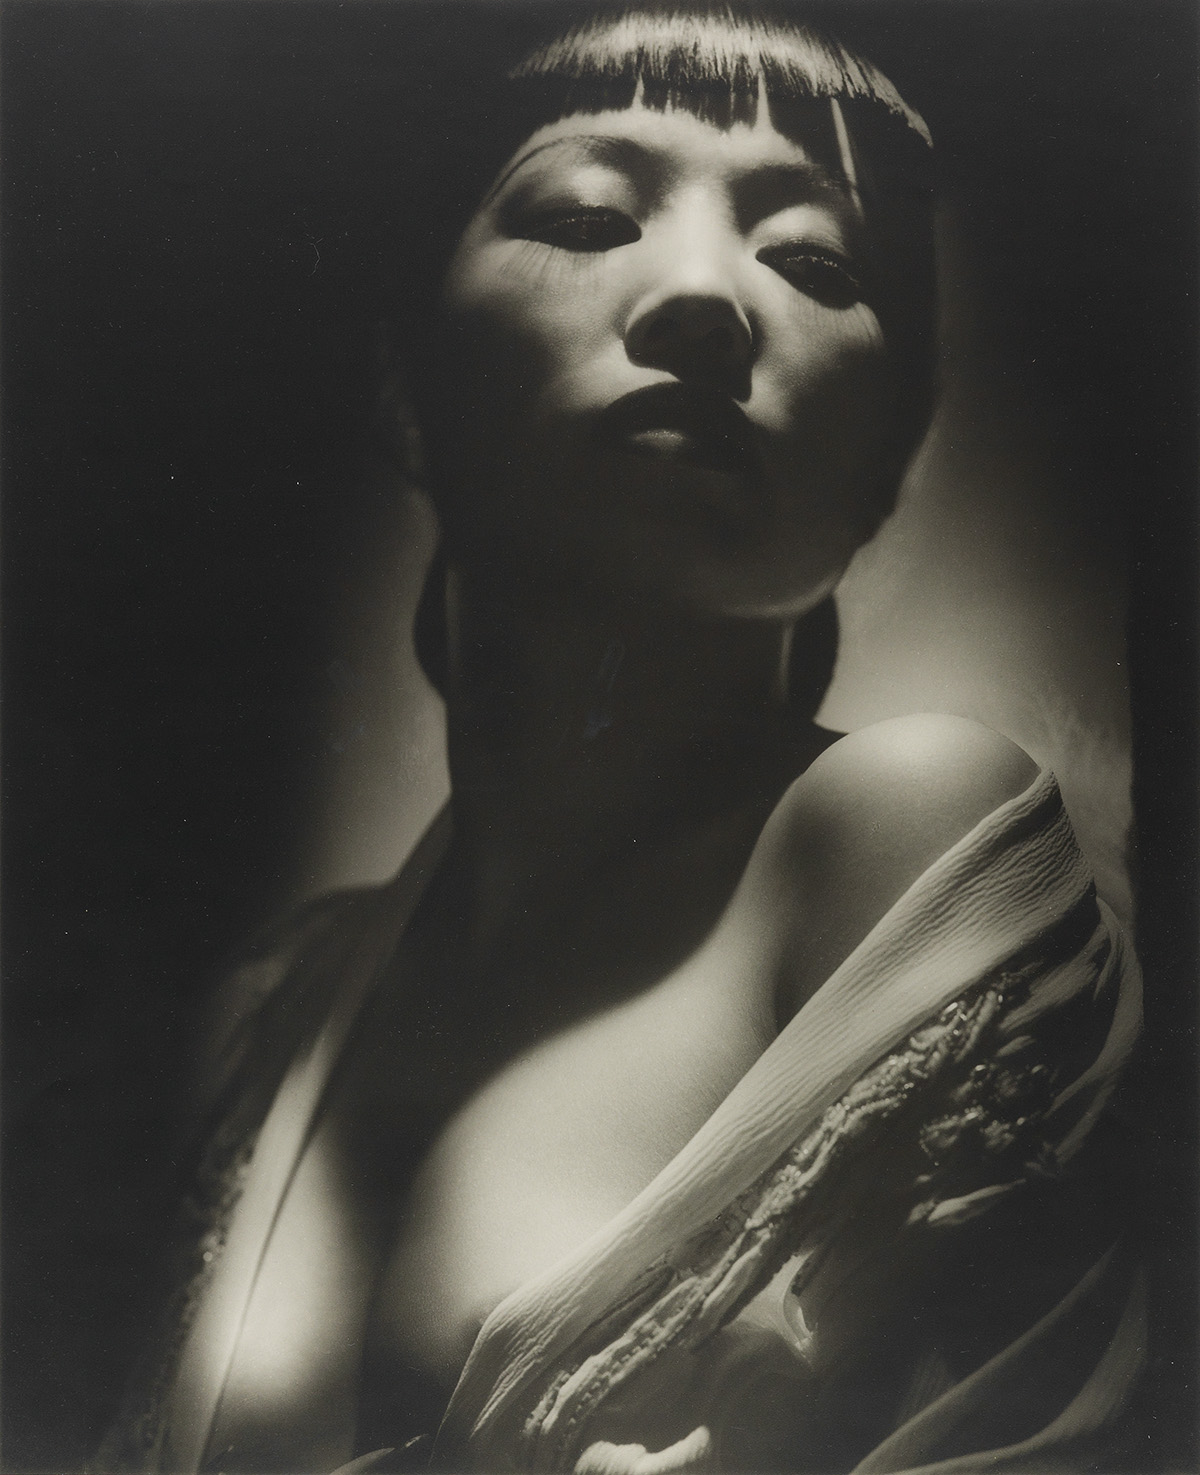 GEORGE HURRELL (1904-1992) Hurrell III: A Portfolio with 10 Photographs.